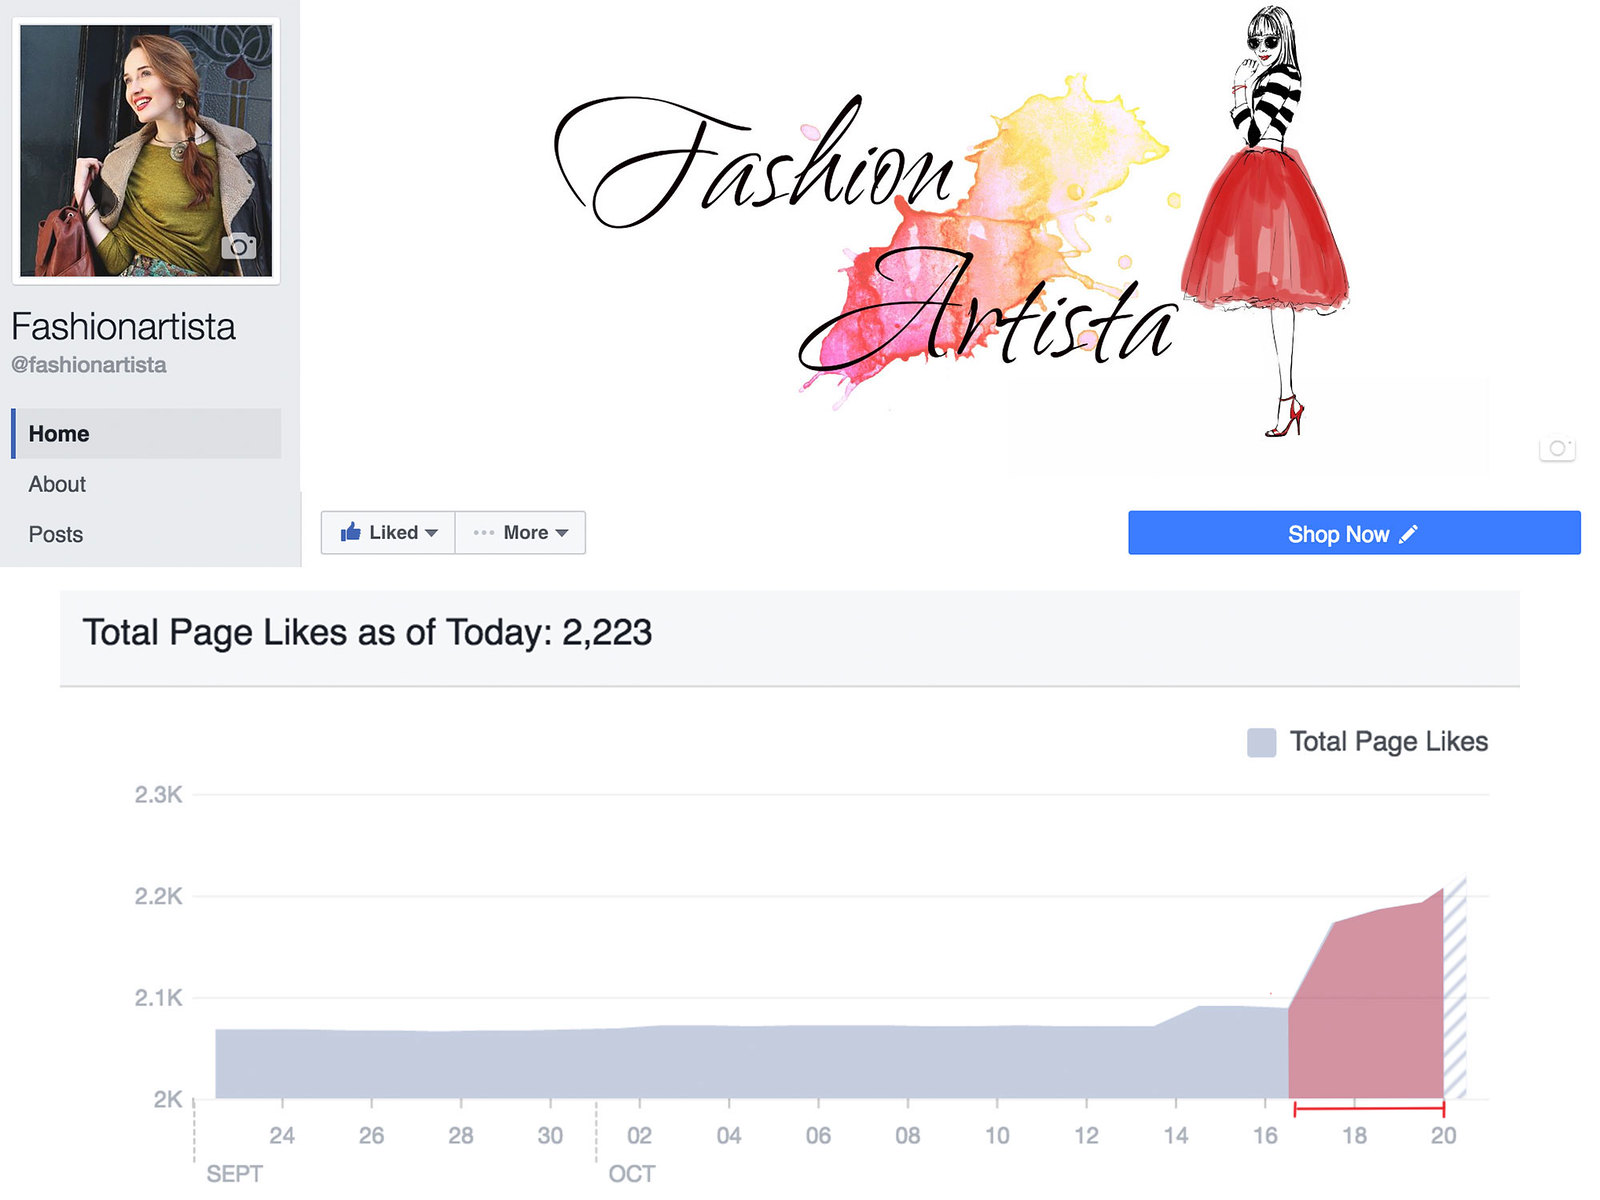 www.fashionartista.com GET MORE FACEBOOK PAGE LIKES WITH THIS WEIRD HACK